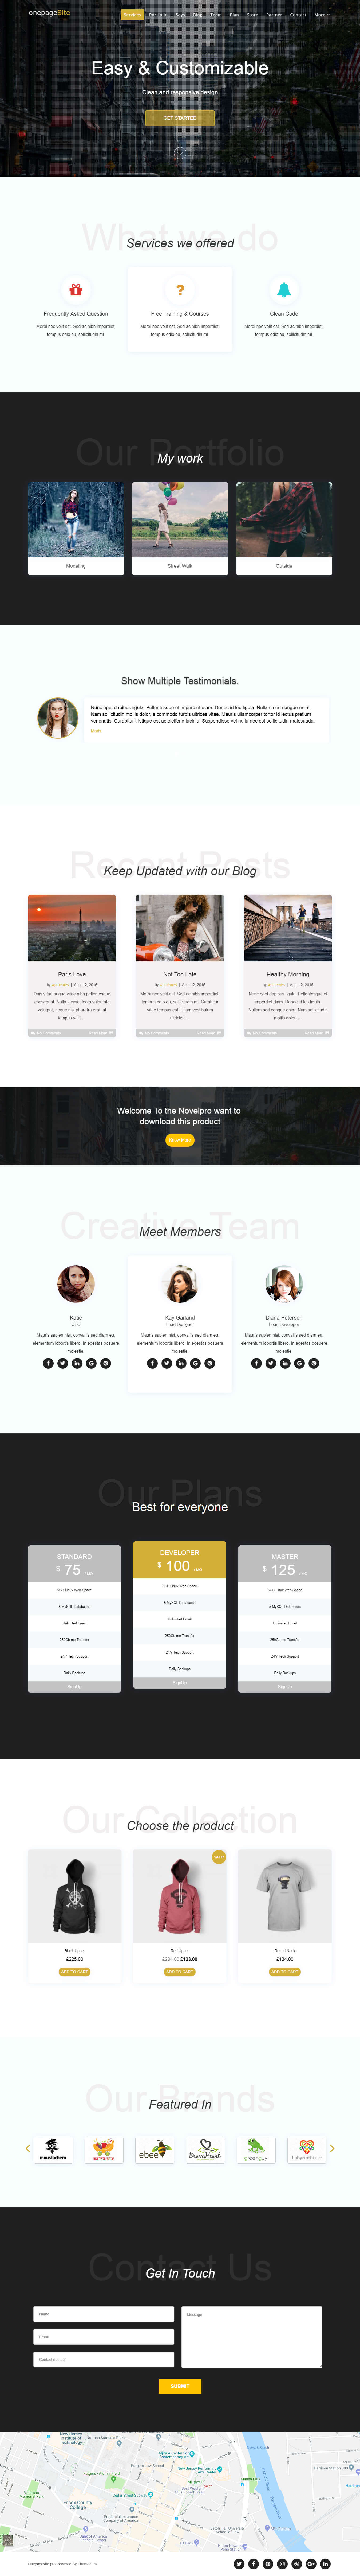 One Page Site Pro